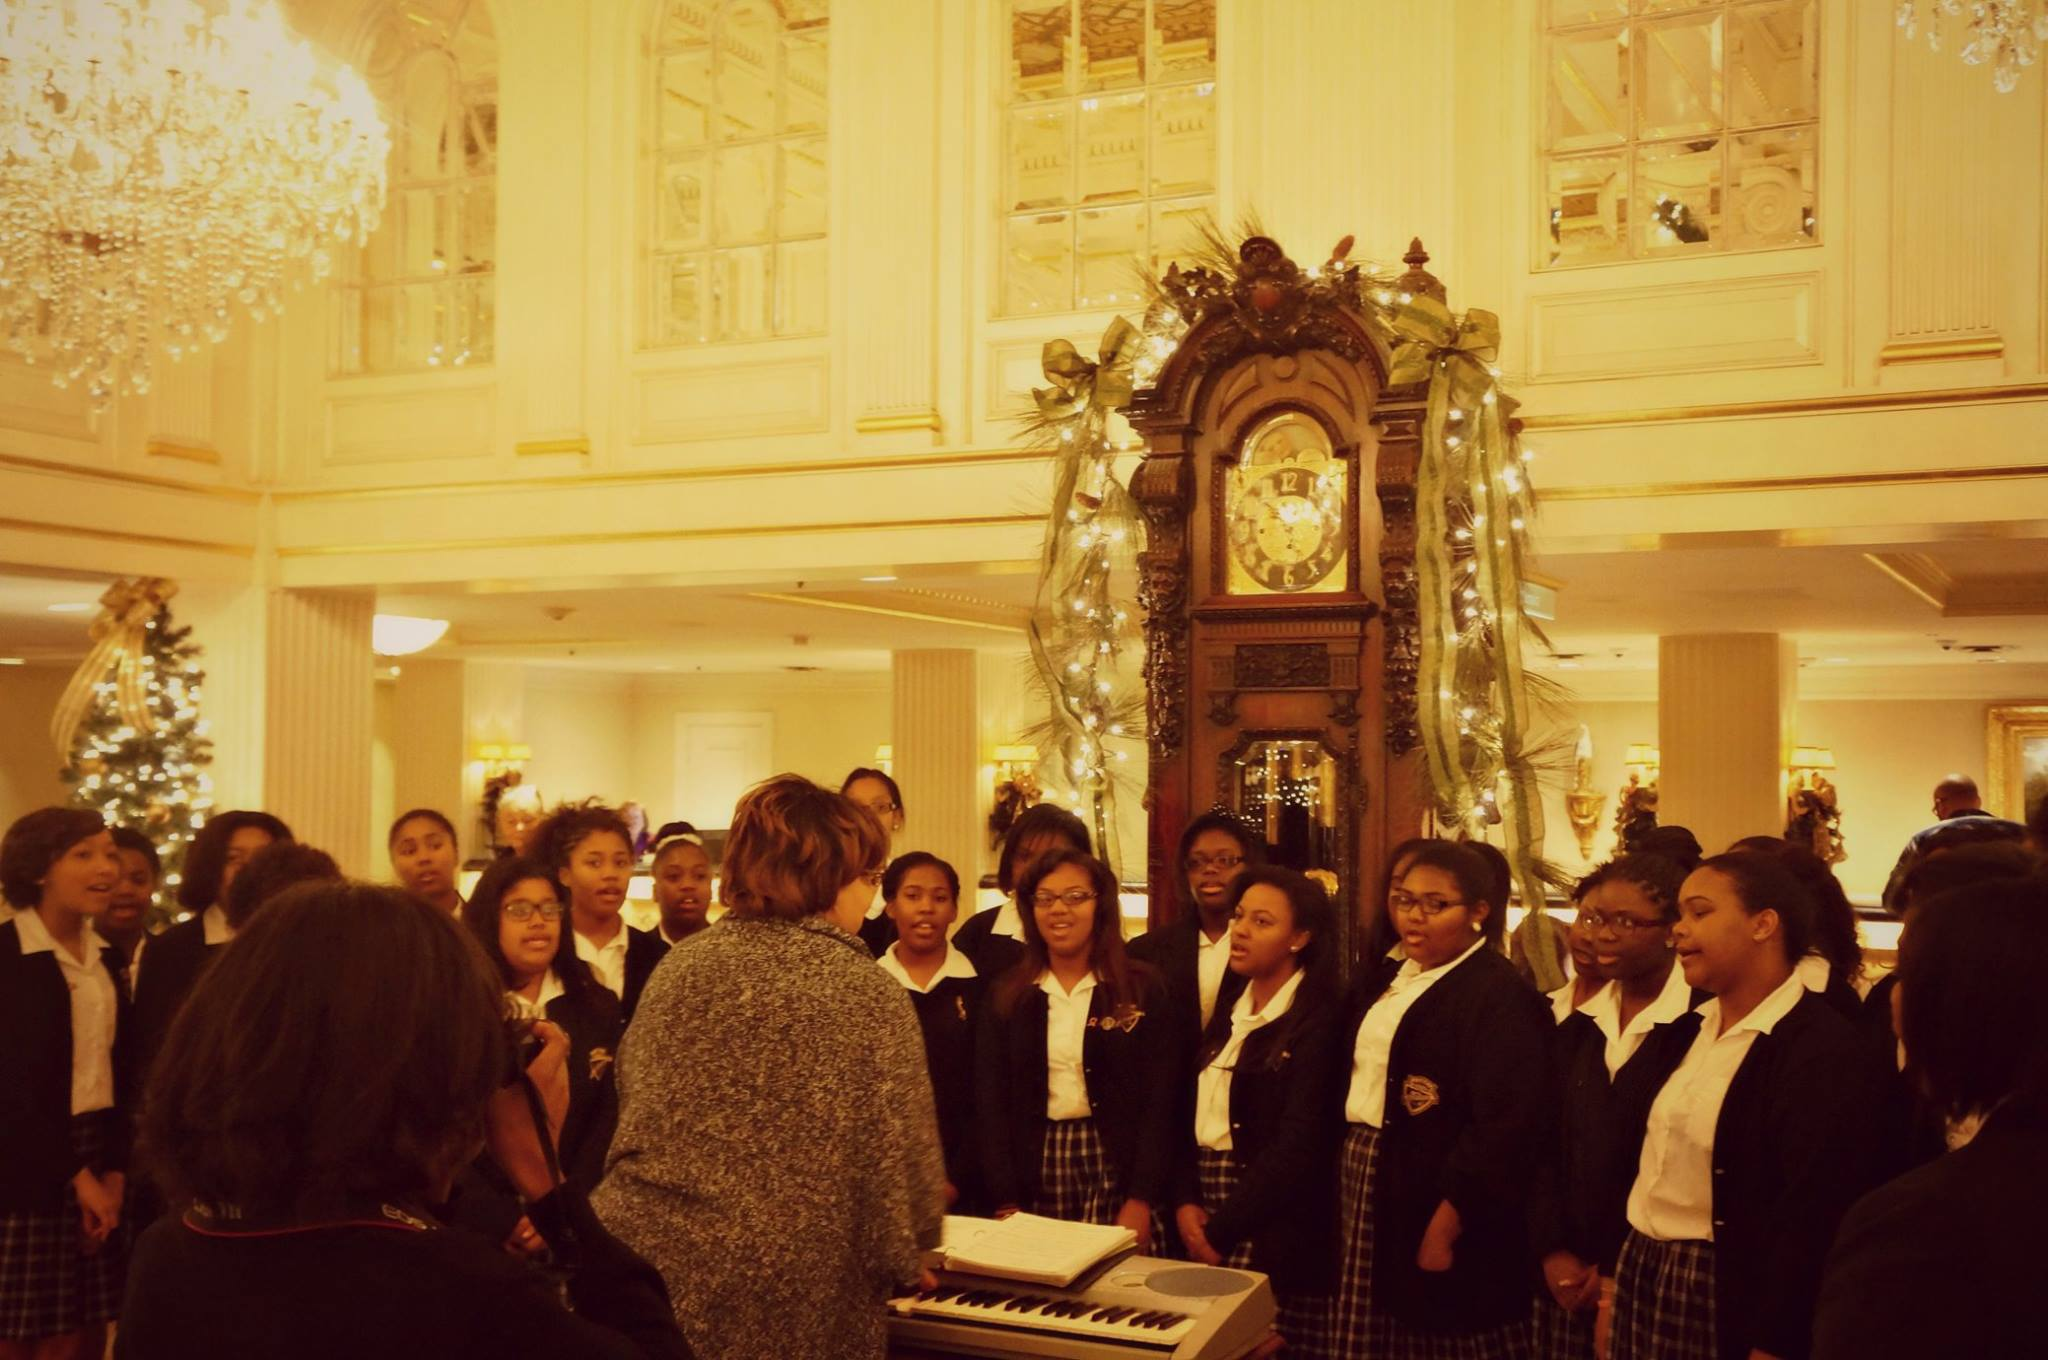 Local school choirs sing carols in the Hotel Monteleone lobby every year during the holidays. (Photo via Hotel Monteleone on Facebook)